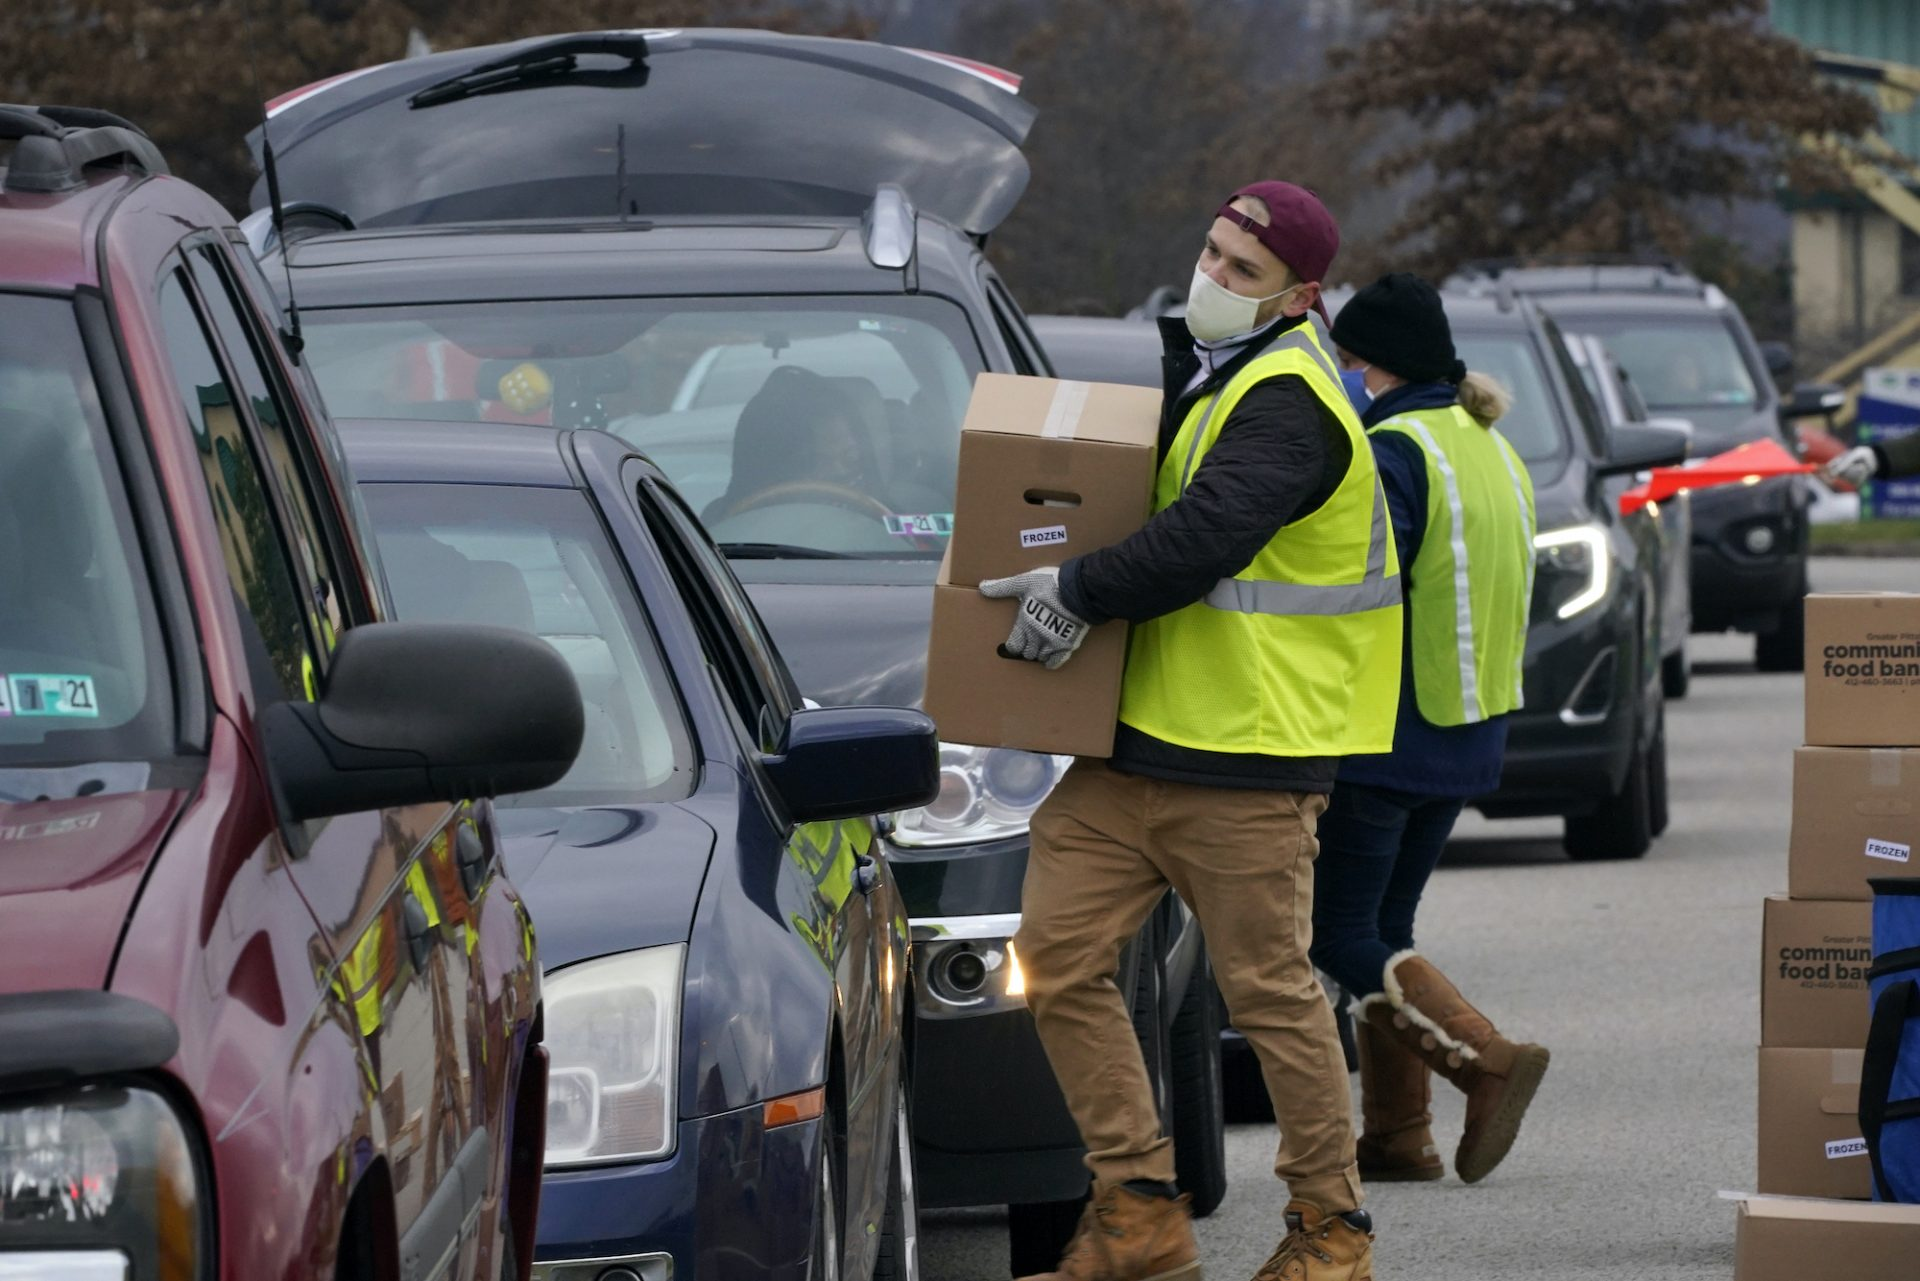 Volunteers load boxes of food into a car during a Greater Pittsburgh Community Food bank drive-up food distribution in Duquesne, Pa., Monday, Nov. 23, 2020.